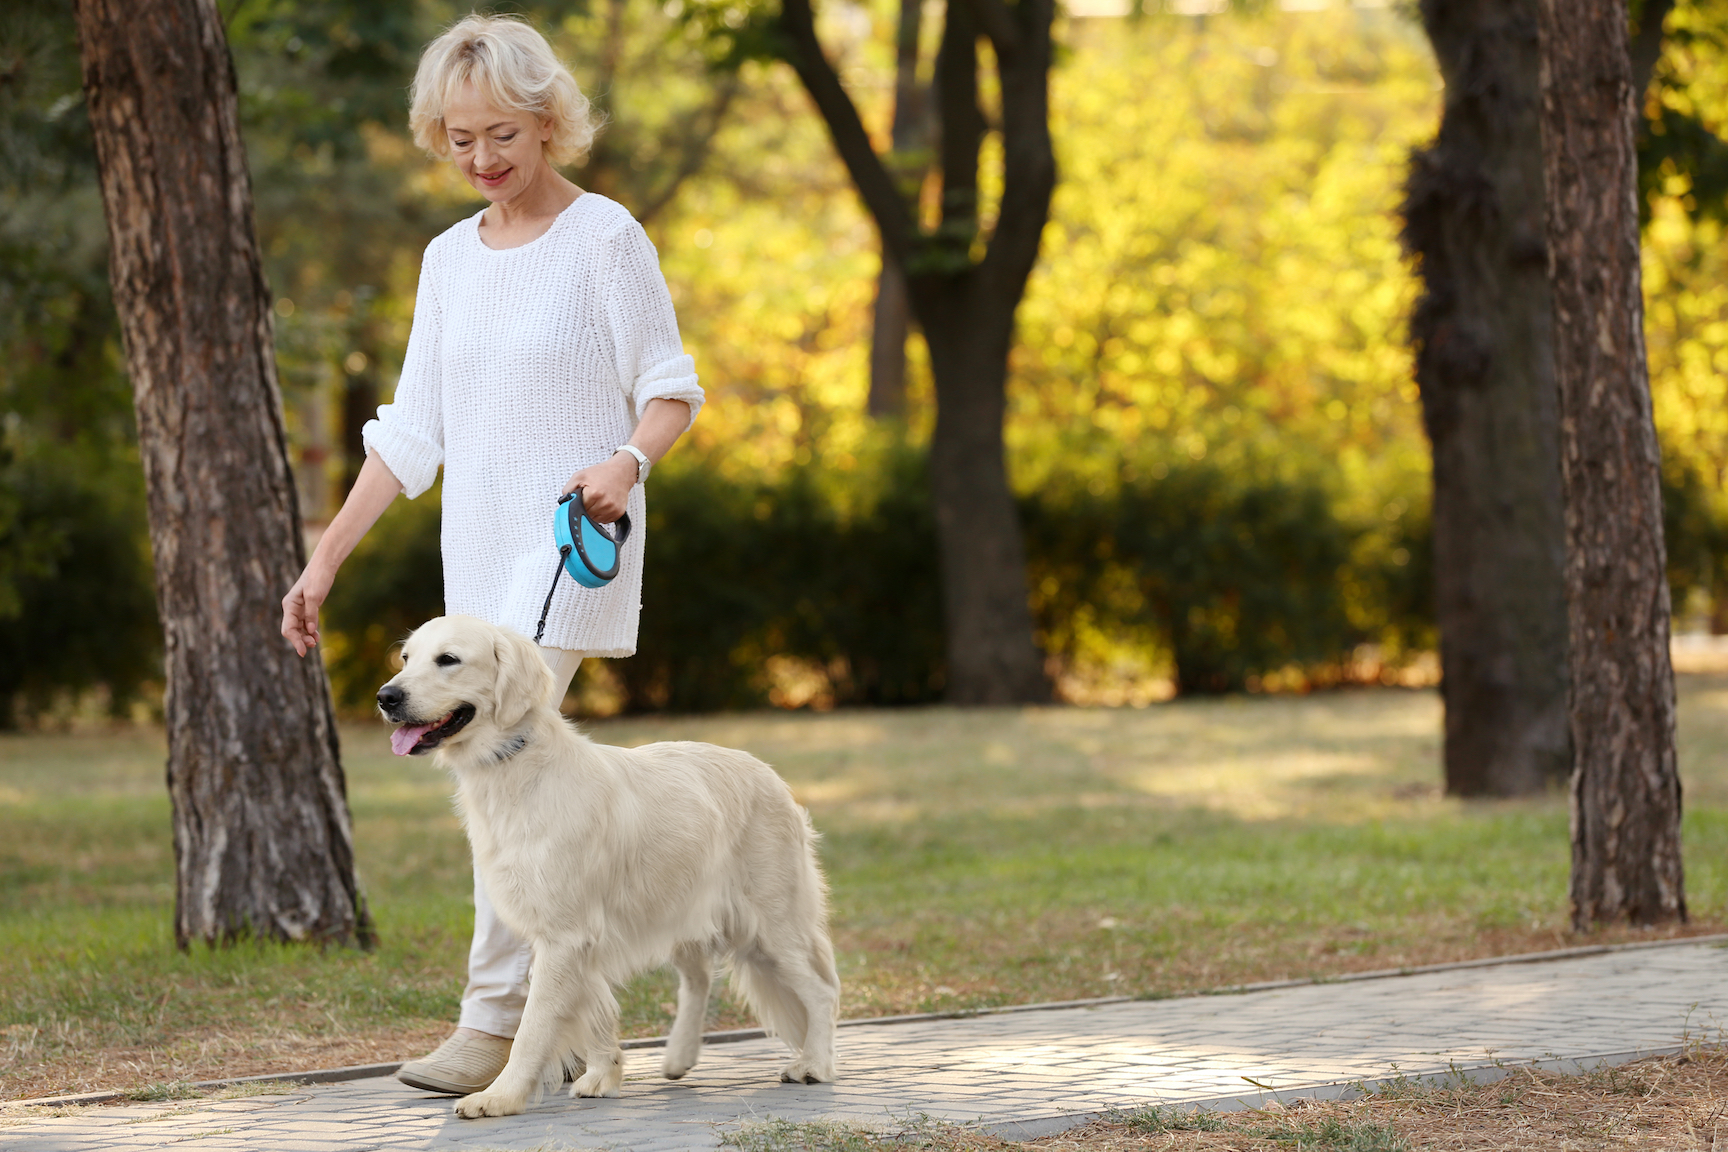 A new study says that owning a dog and walking them regularly had a hugely positive impact on keeping older adults more active.